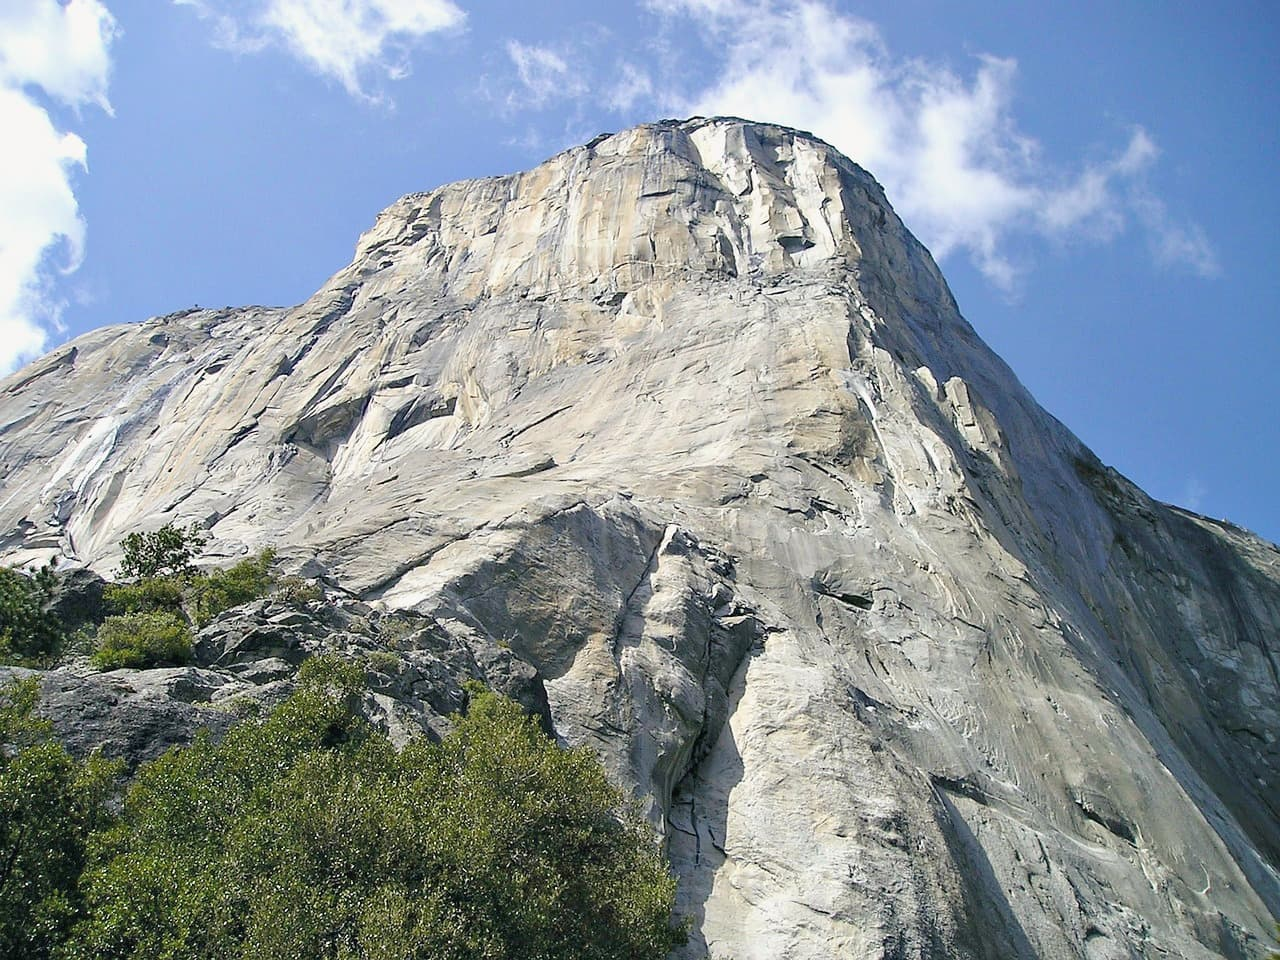 Looking up at a 3000 foot granite rock face